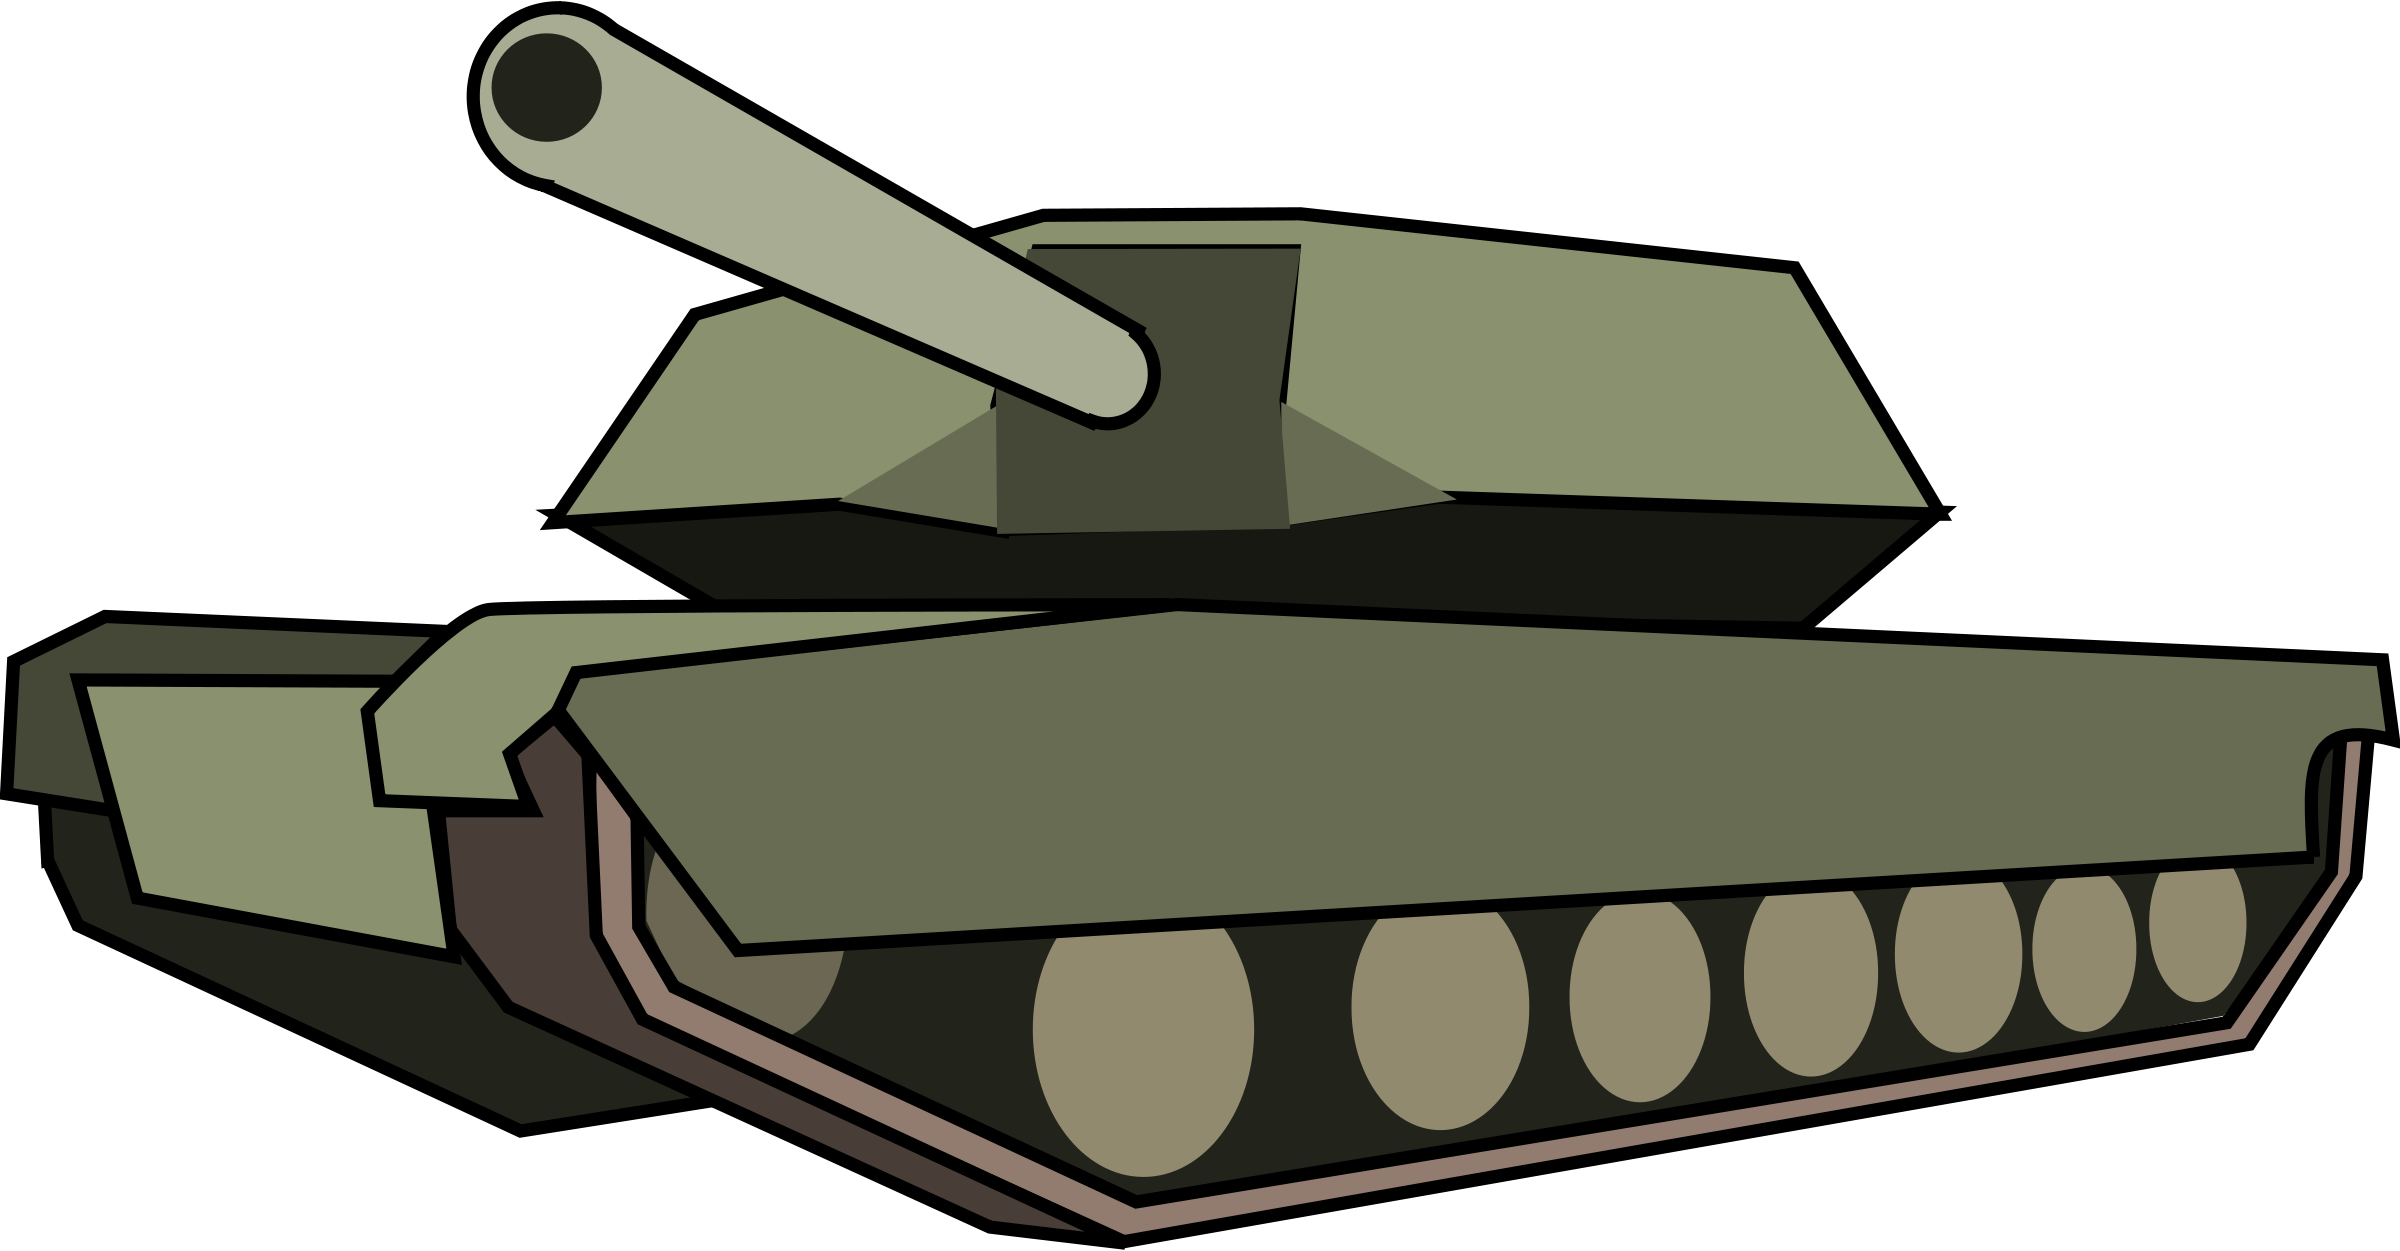 Tank clipart #5, Download drawings